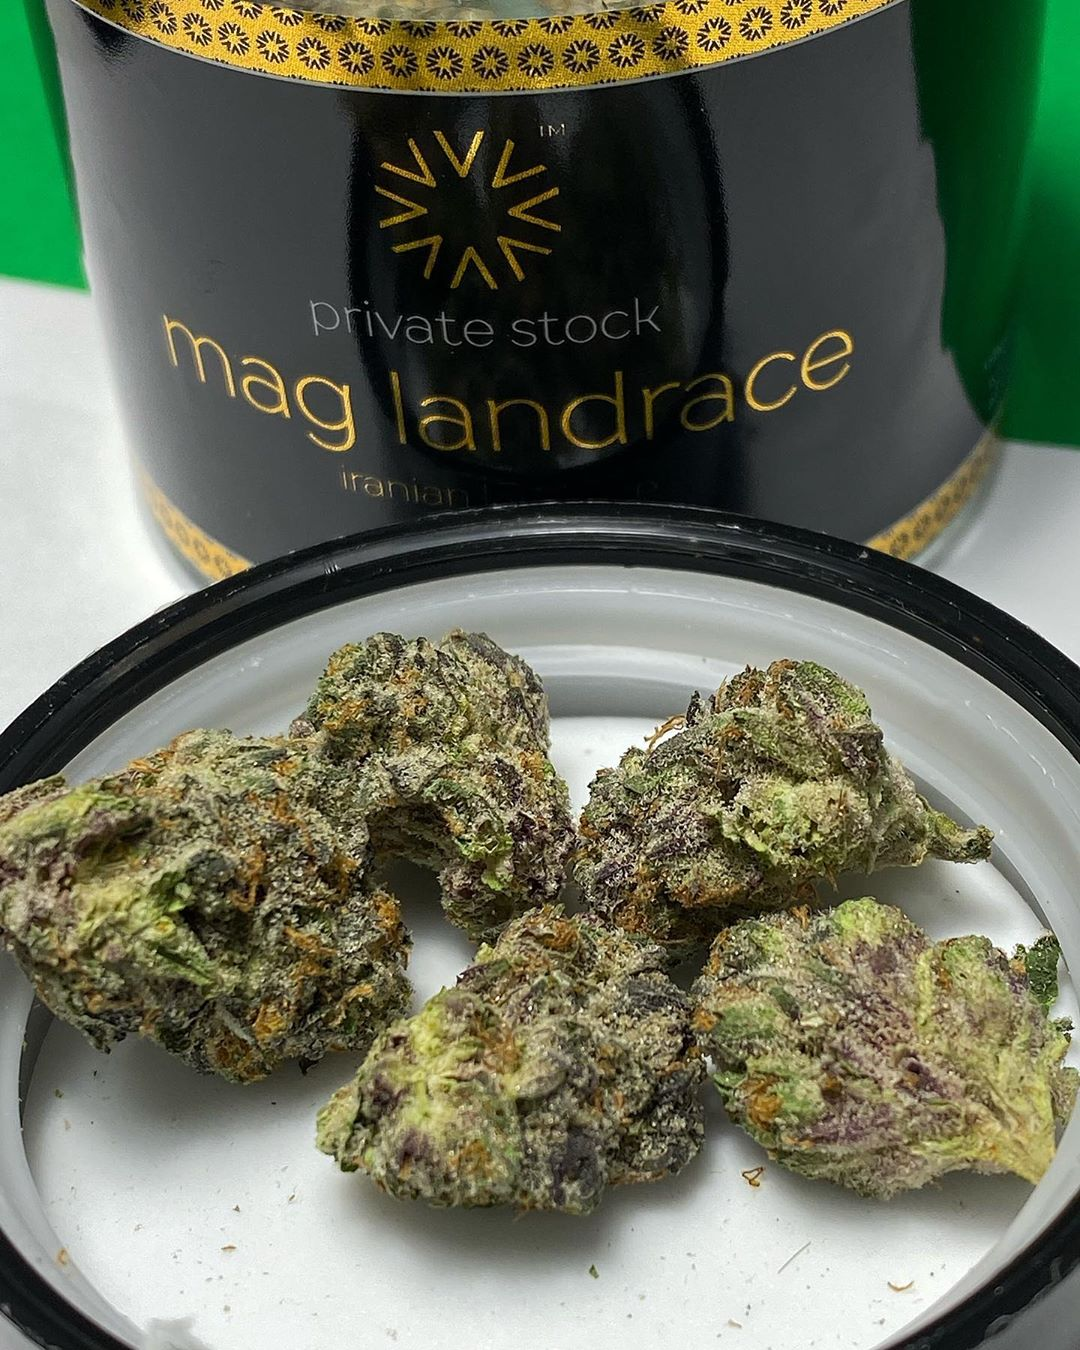 Strain Review: Mag Landrace by verano Brands - The Highest Critic